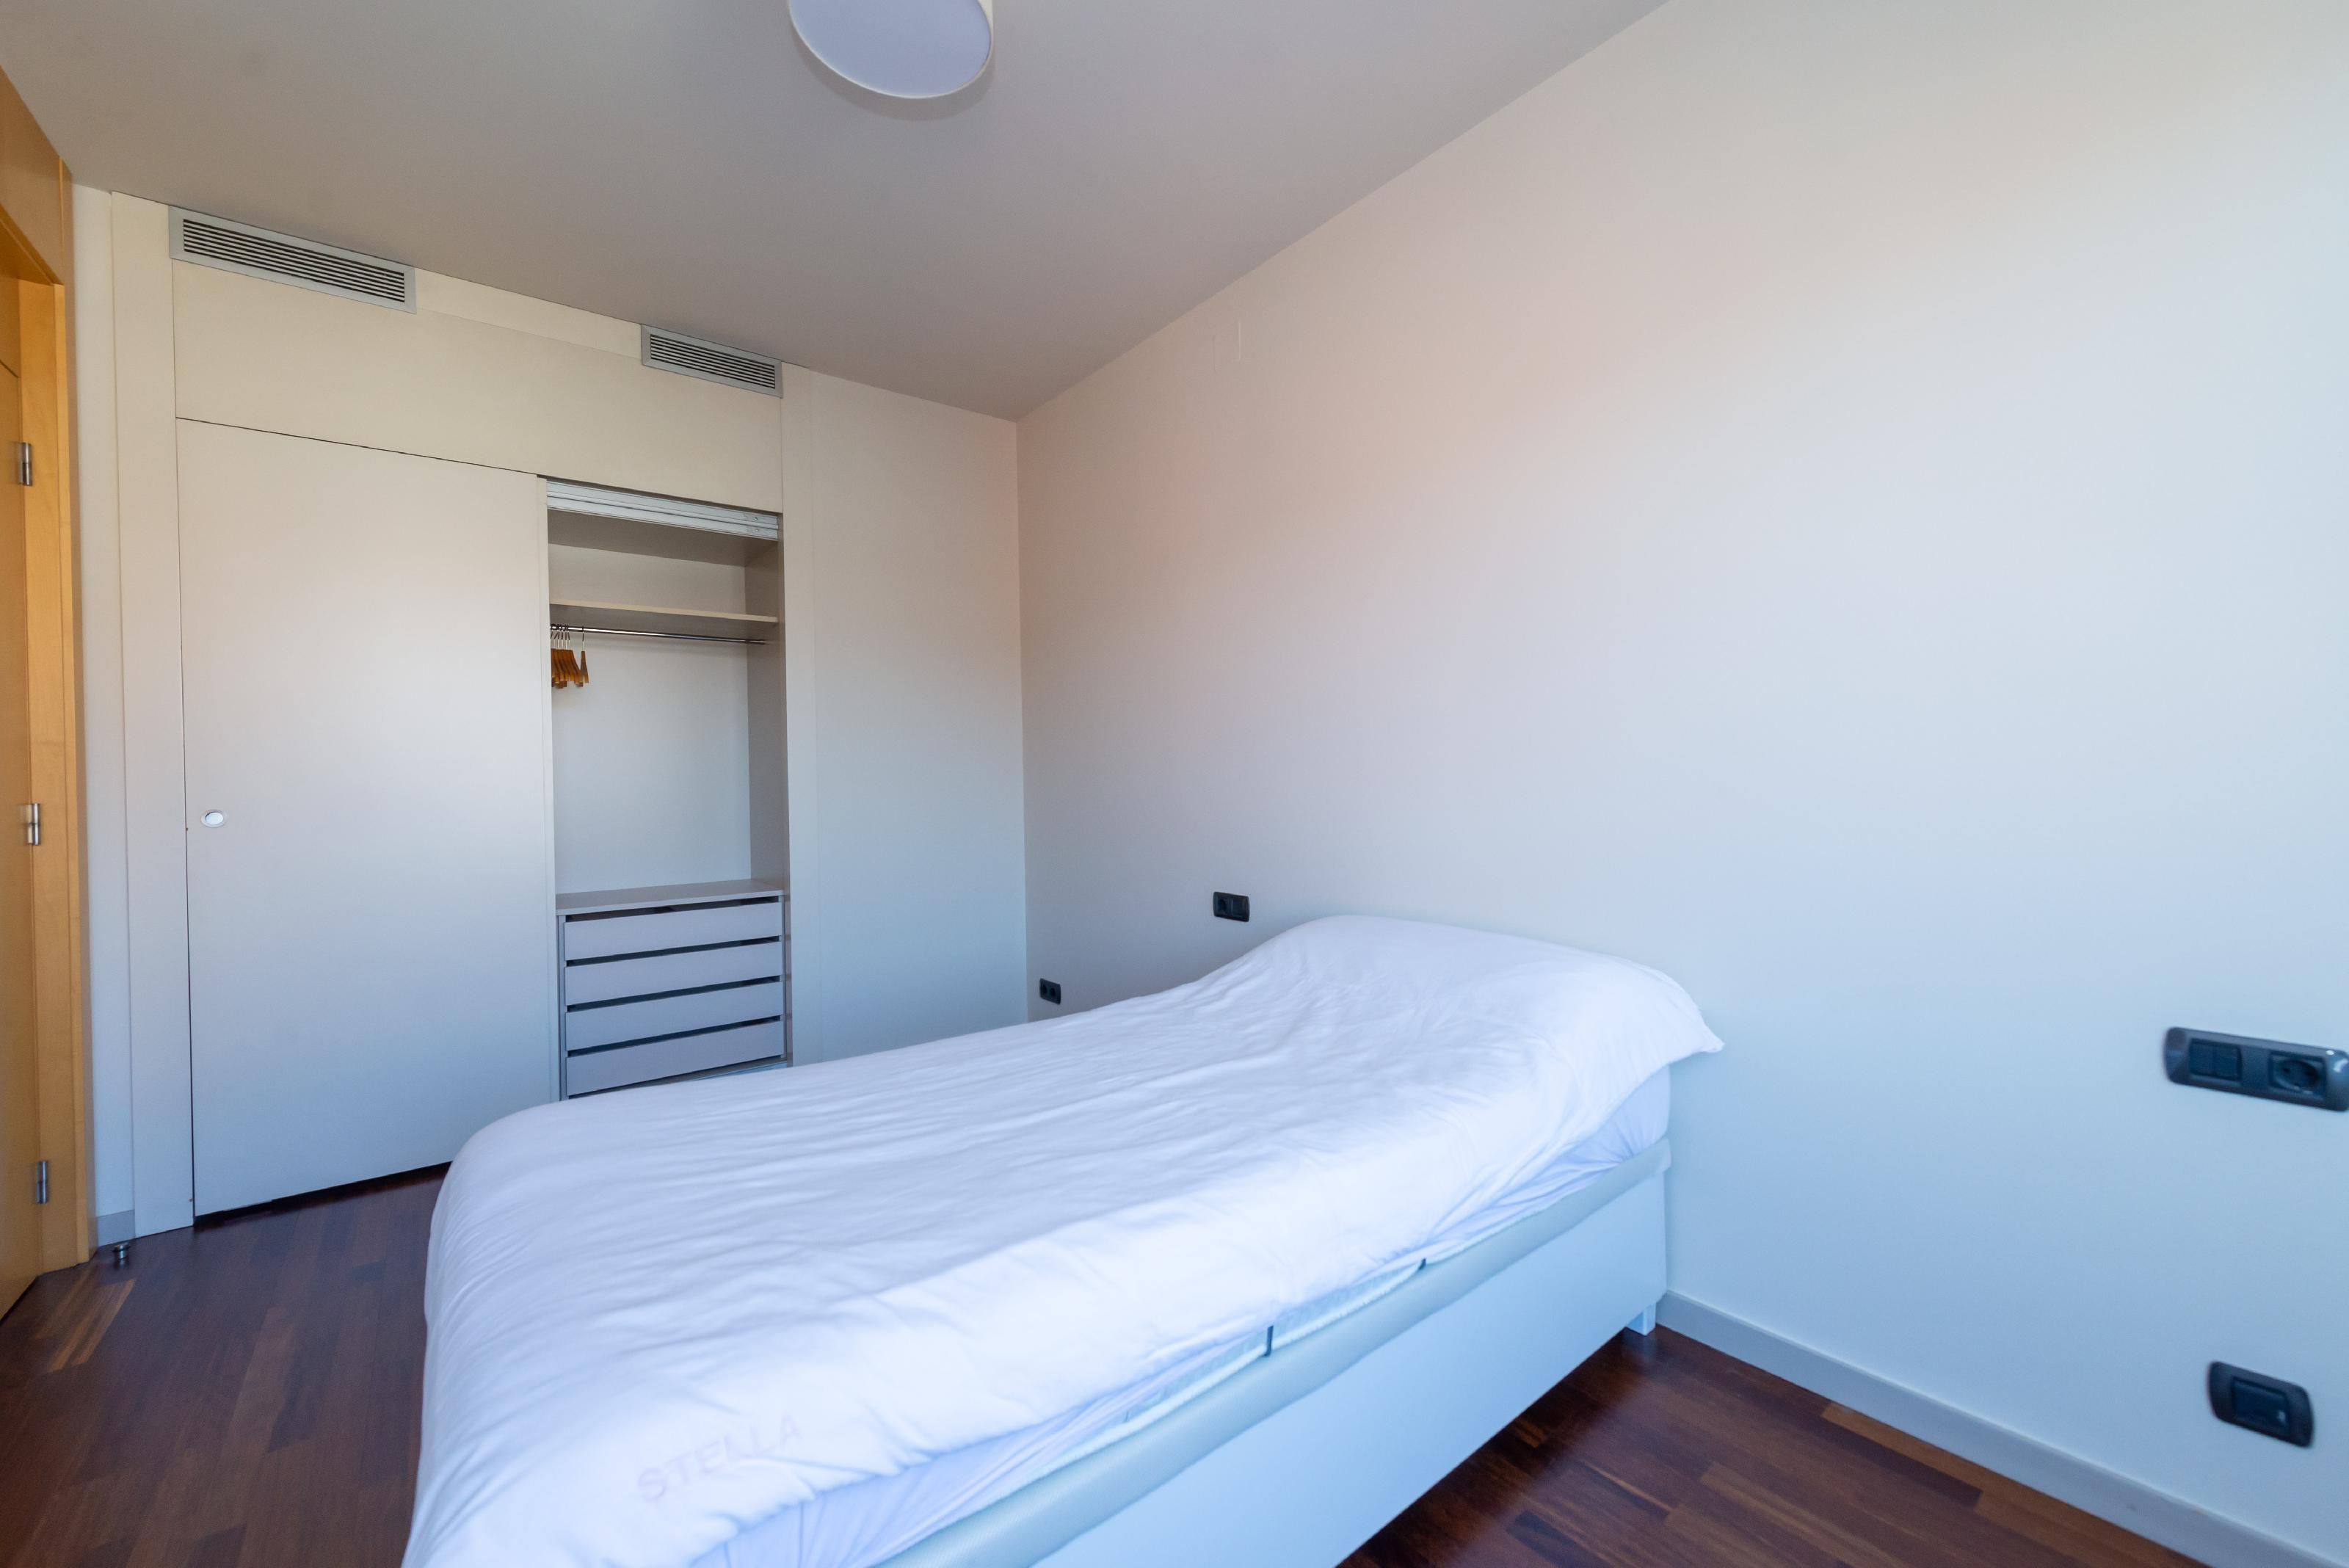 246682 Flat for sale in Gràcia, Vallcarca and Els Penitents 13